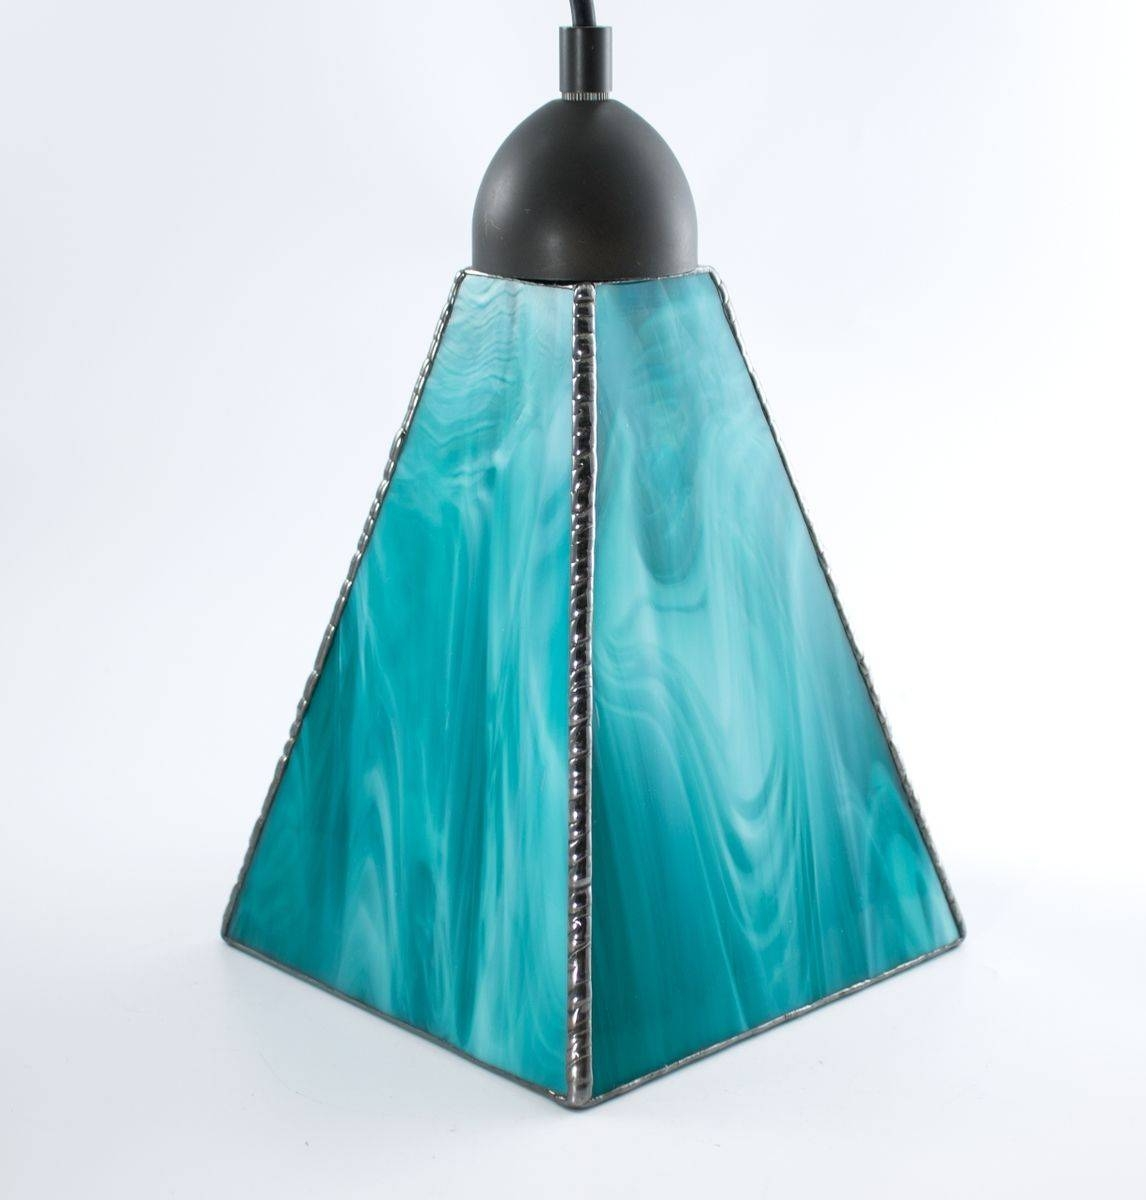 Hand Crafted Custom Stained Glass Pendant Lights - Wispy Art Glass throughout Turquoise Blue Glass Pendant Lights (Image 2 of 15)